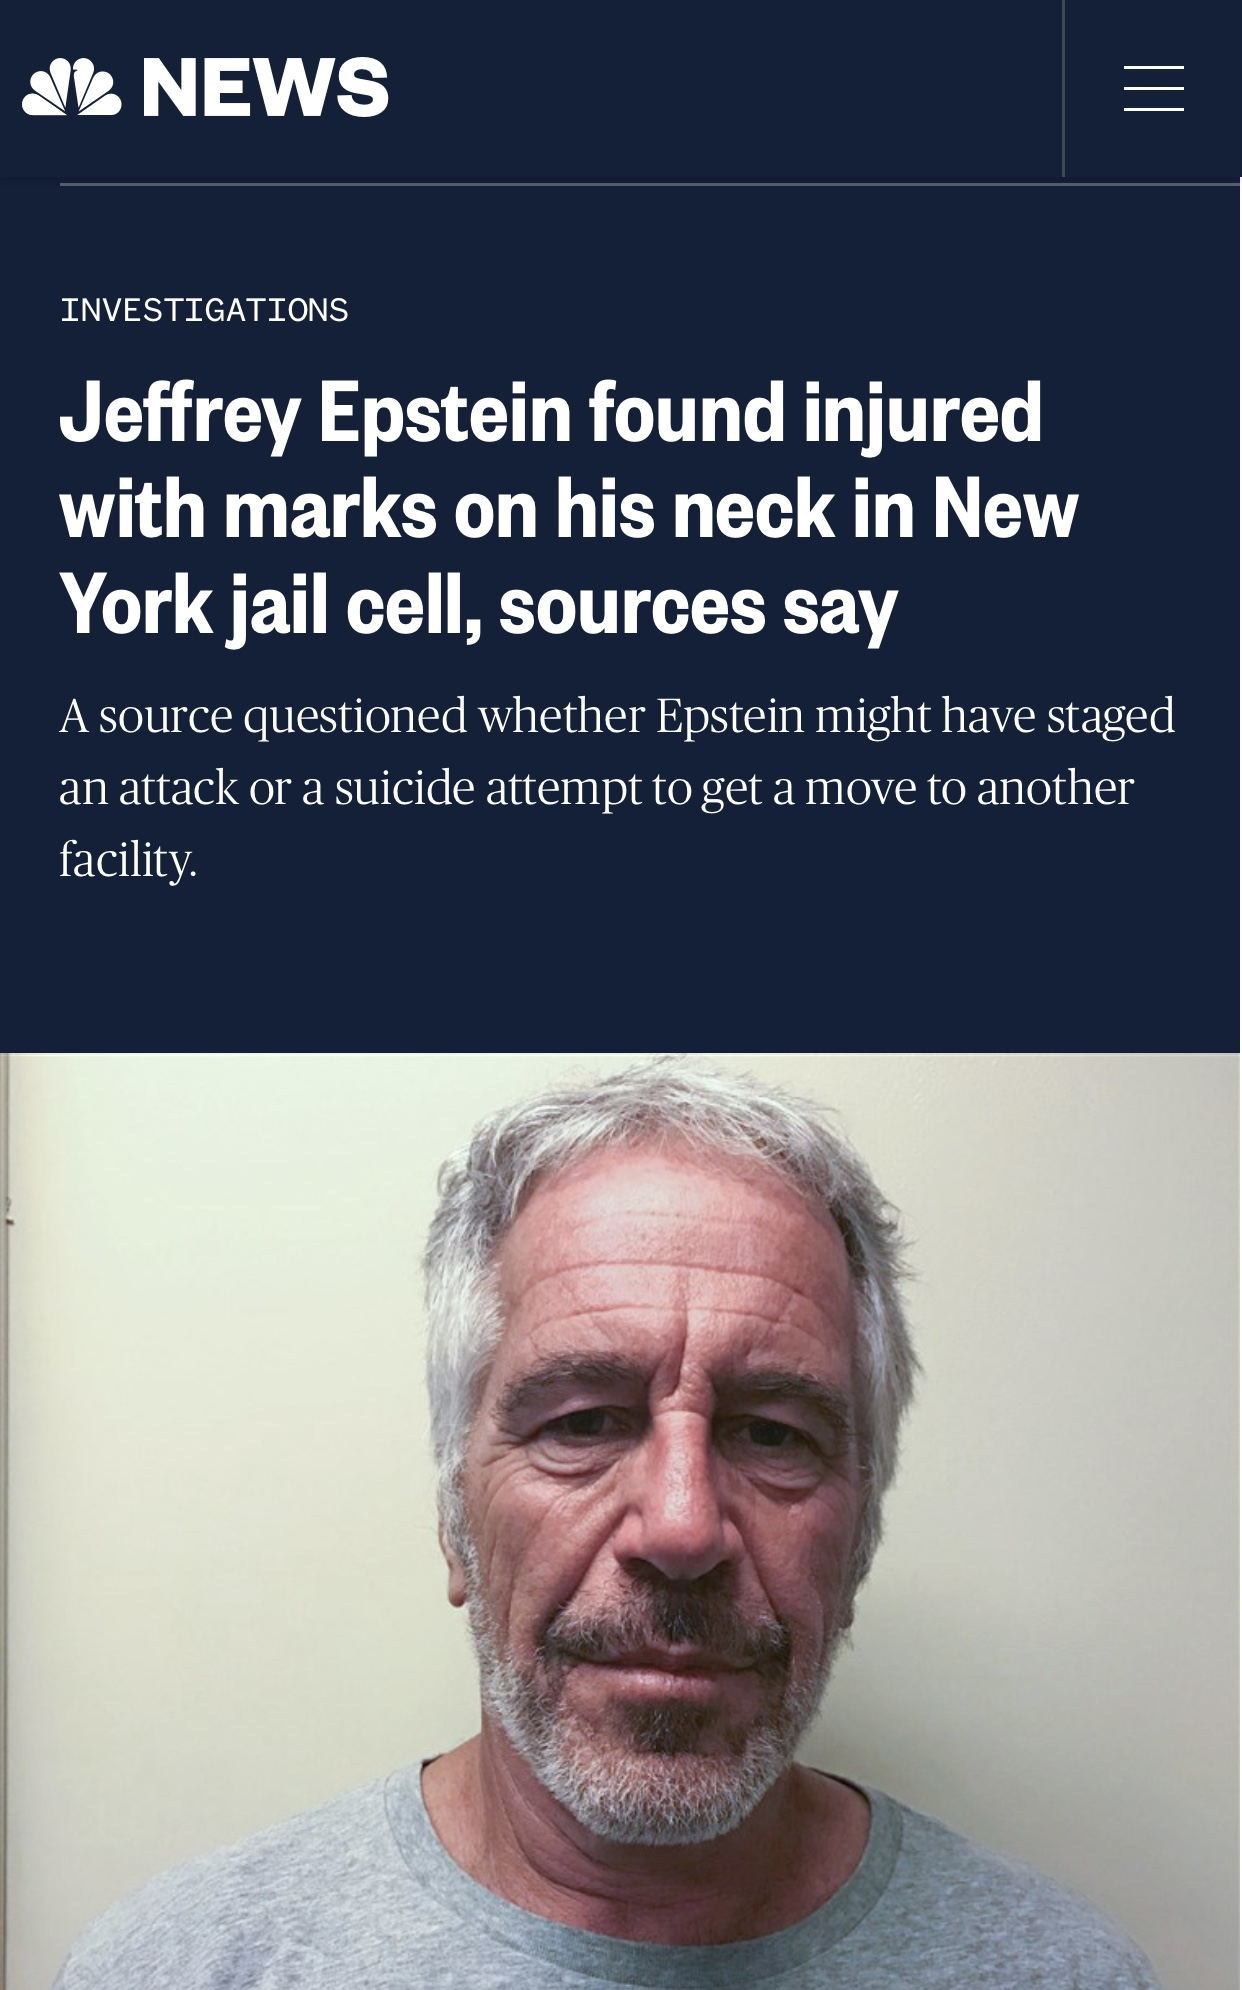 Jeffrey Epstein found injured with marks on his neck in New York jail cell, sources say